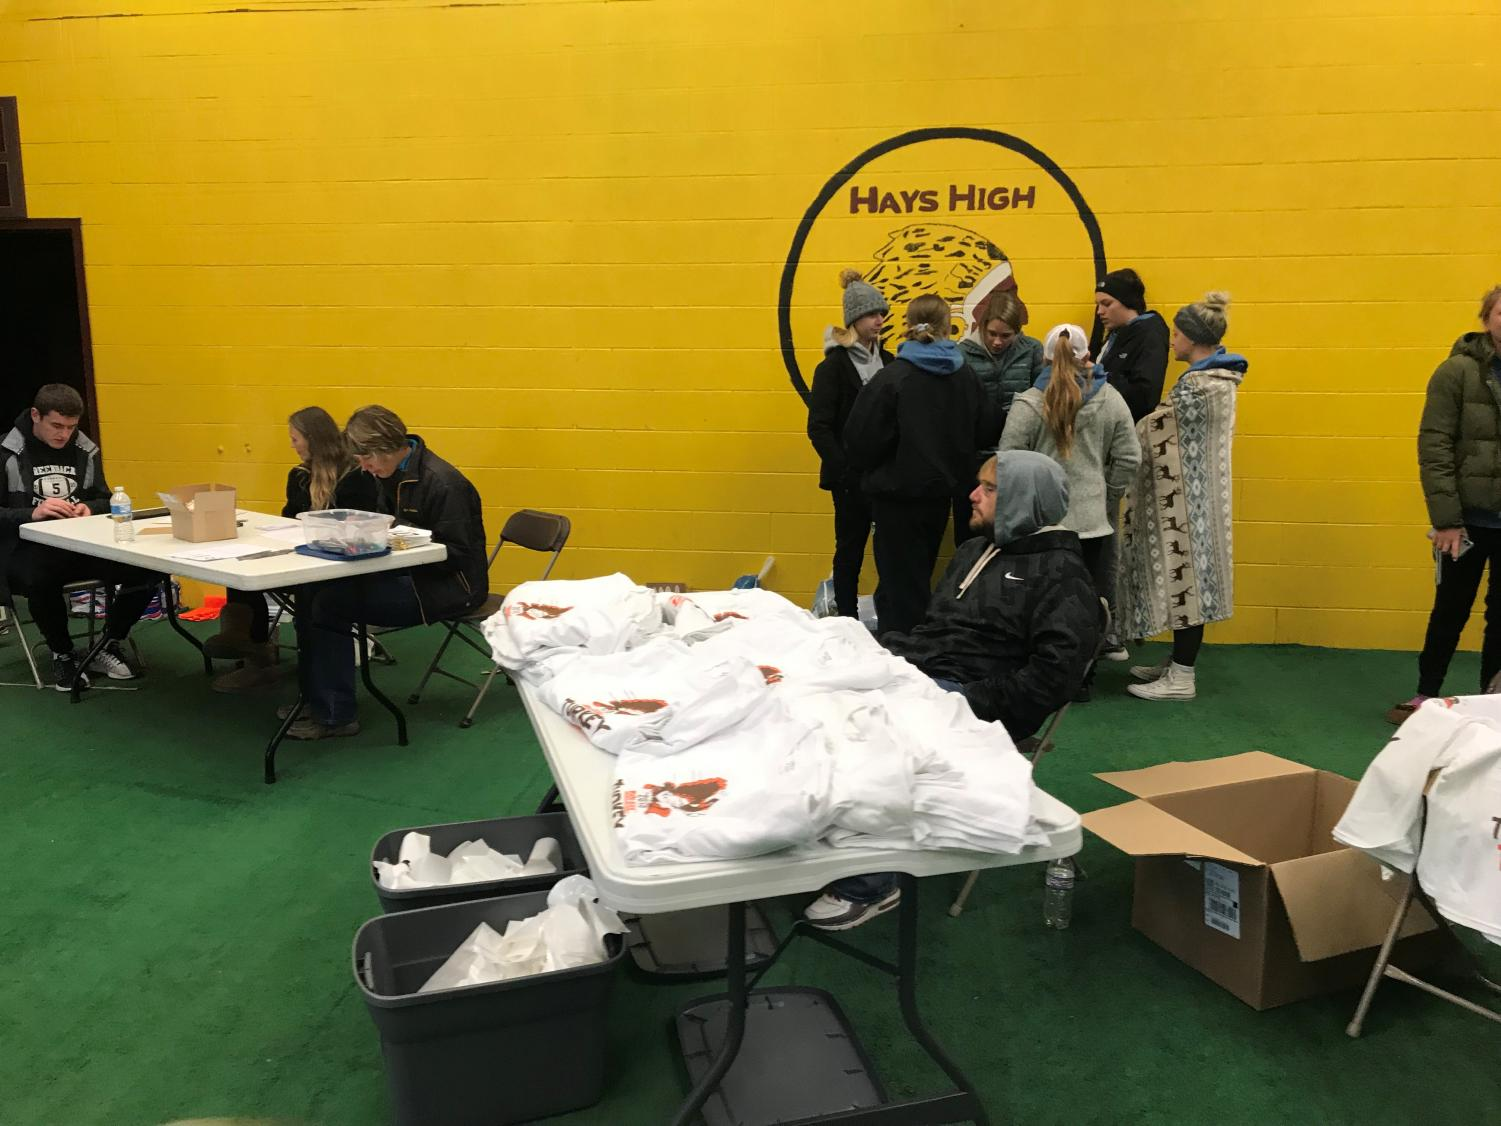 DECA students were given the opportunity to volunteer at annual Turkey Trot event, hosted by the HRC.